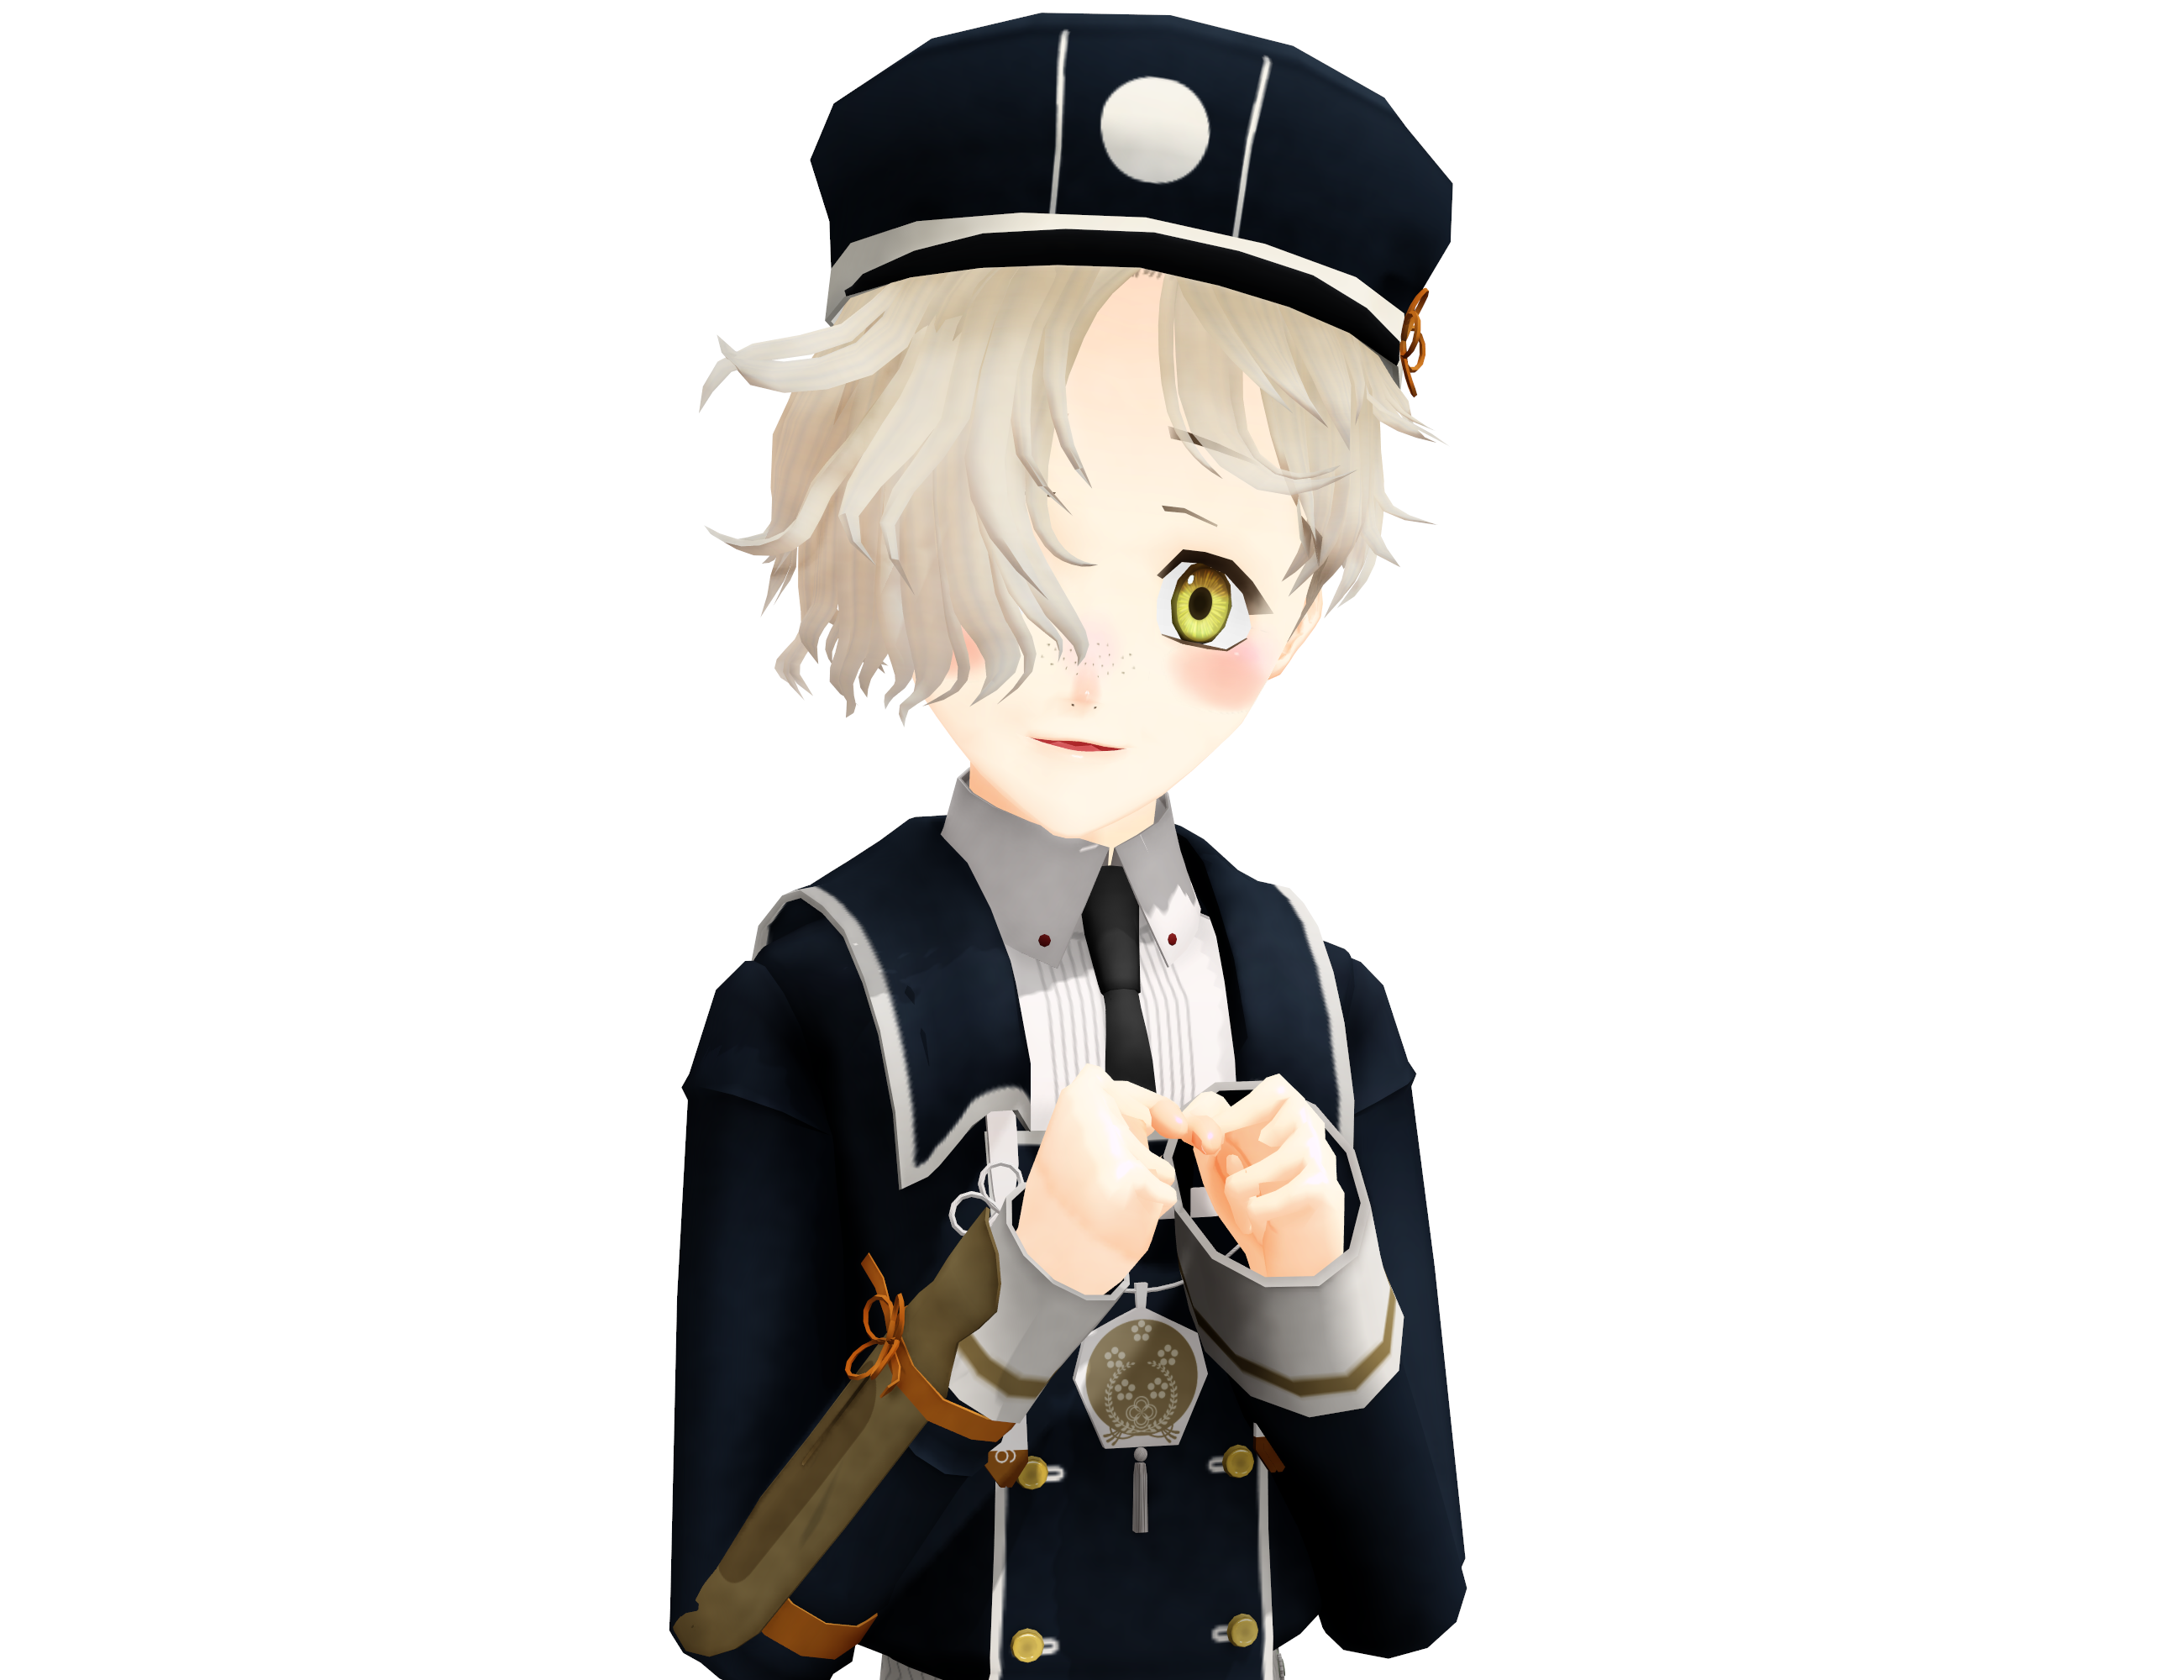 shota boy 3d anime